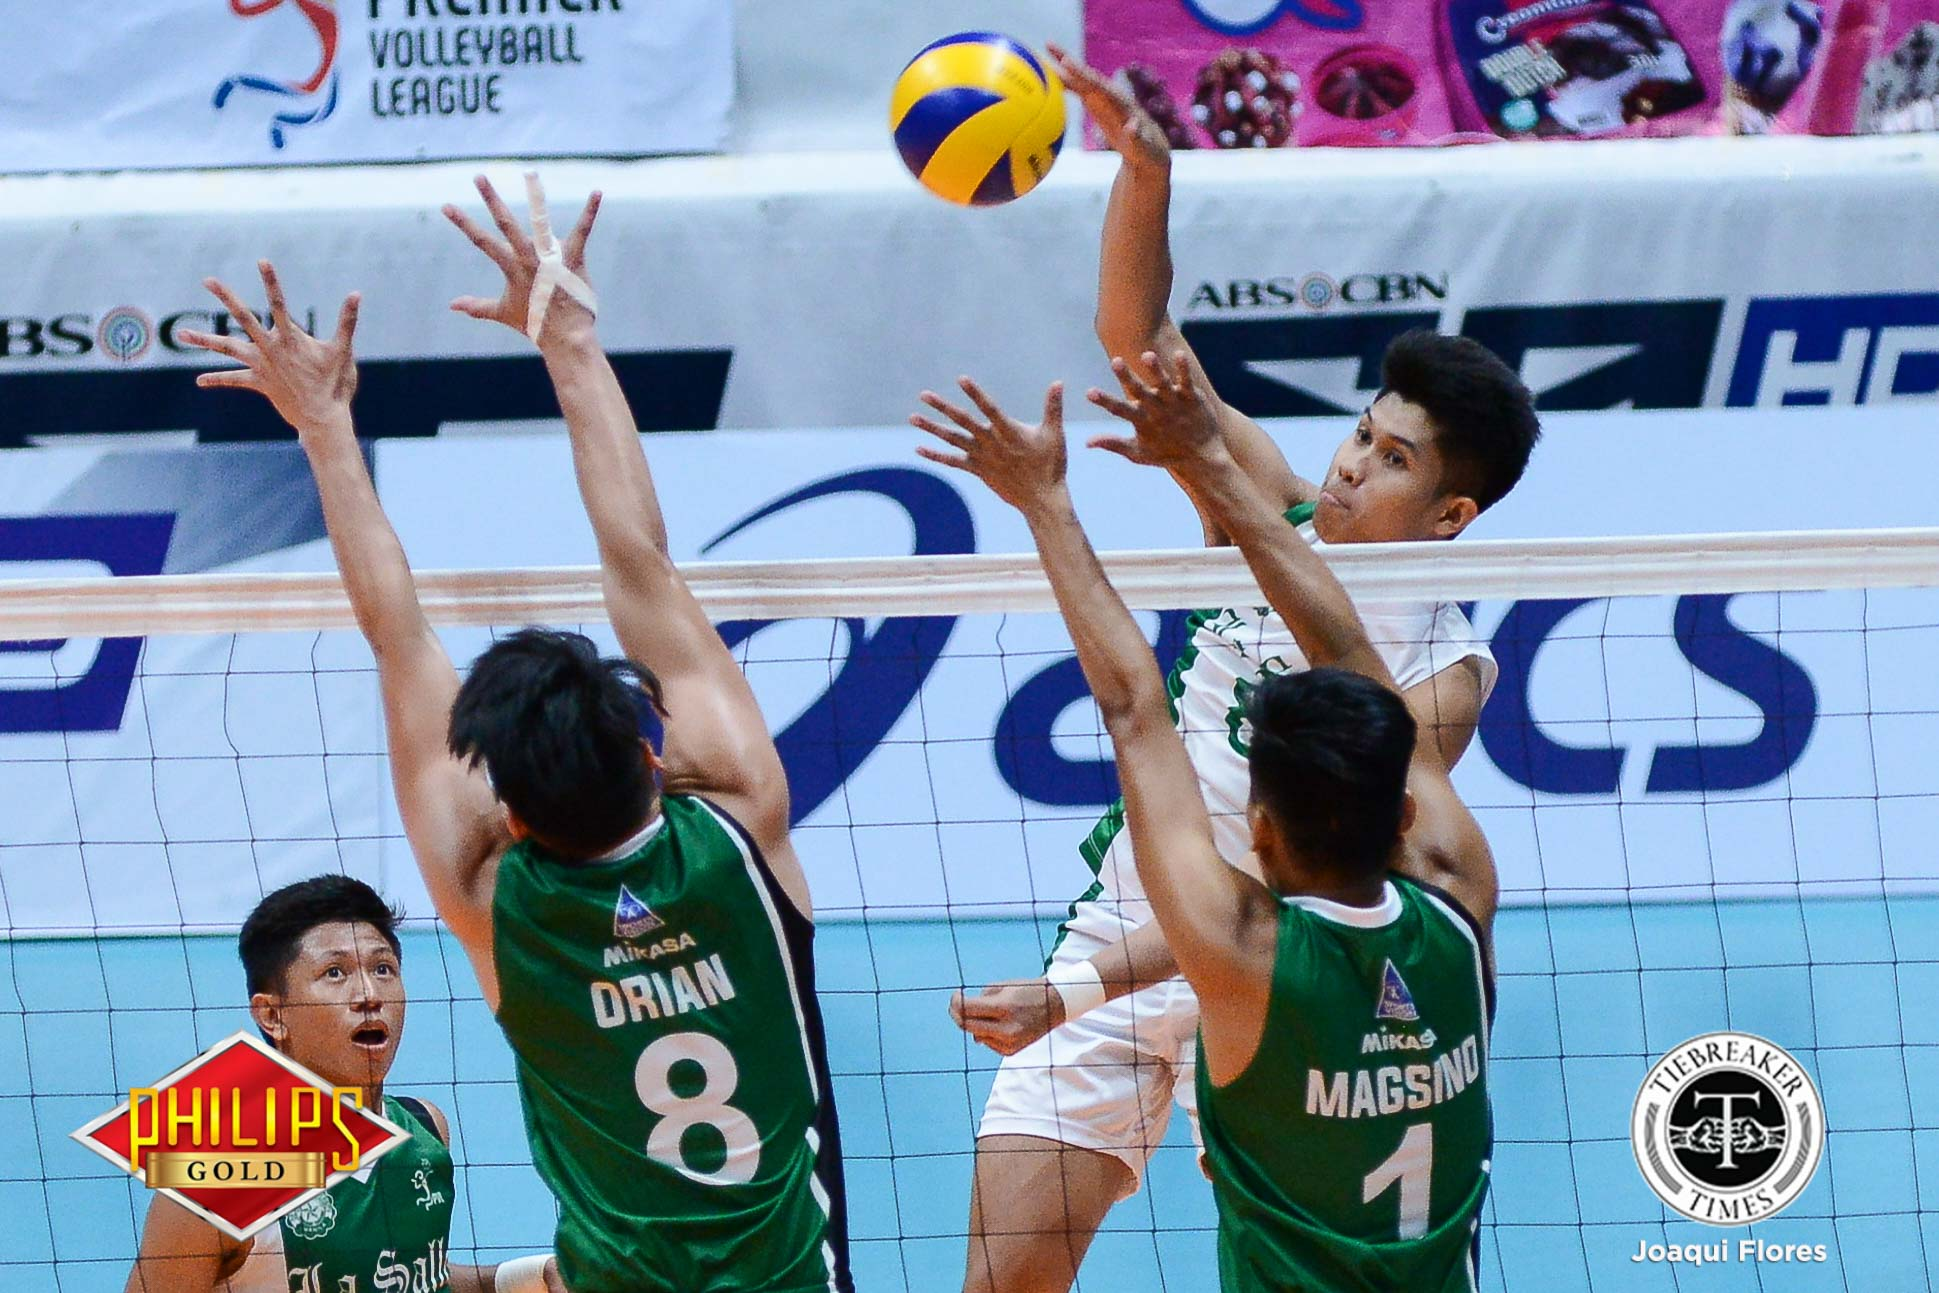 Philippine Sports News - Tiebreaker Times La Salle outlasts skidding NU in five sets DLSU News NU PVL Volleyball  Wayne Marco Raymark Woo NU Men's Volleyball Norman Miguel Jopet Movido Fauzi Ismail DLSU Men's Volleyball Dante Alinsunurin Cris Dumago Bryan Bagunas Arjay Onia 2017 PVL Season 2017 PVL Men's Collegiate Conference